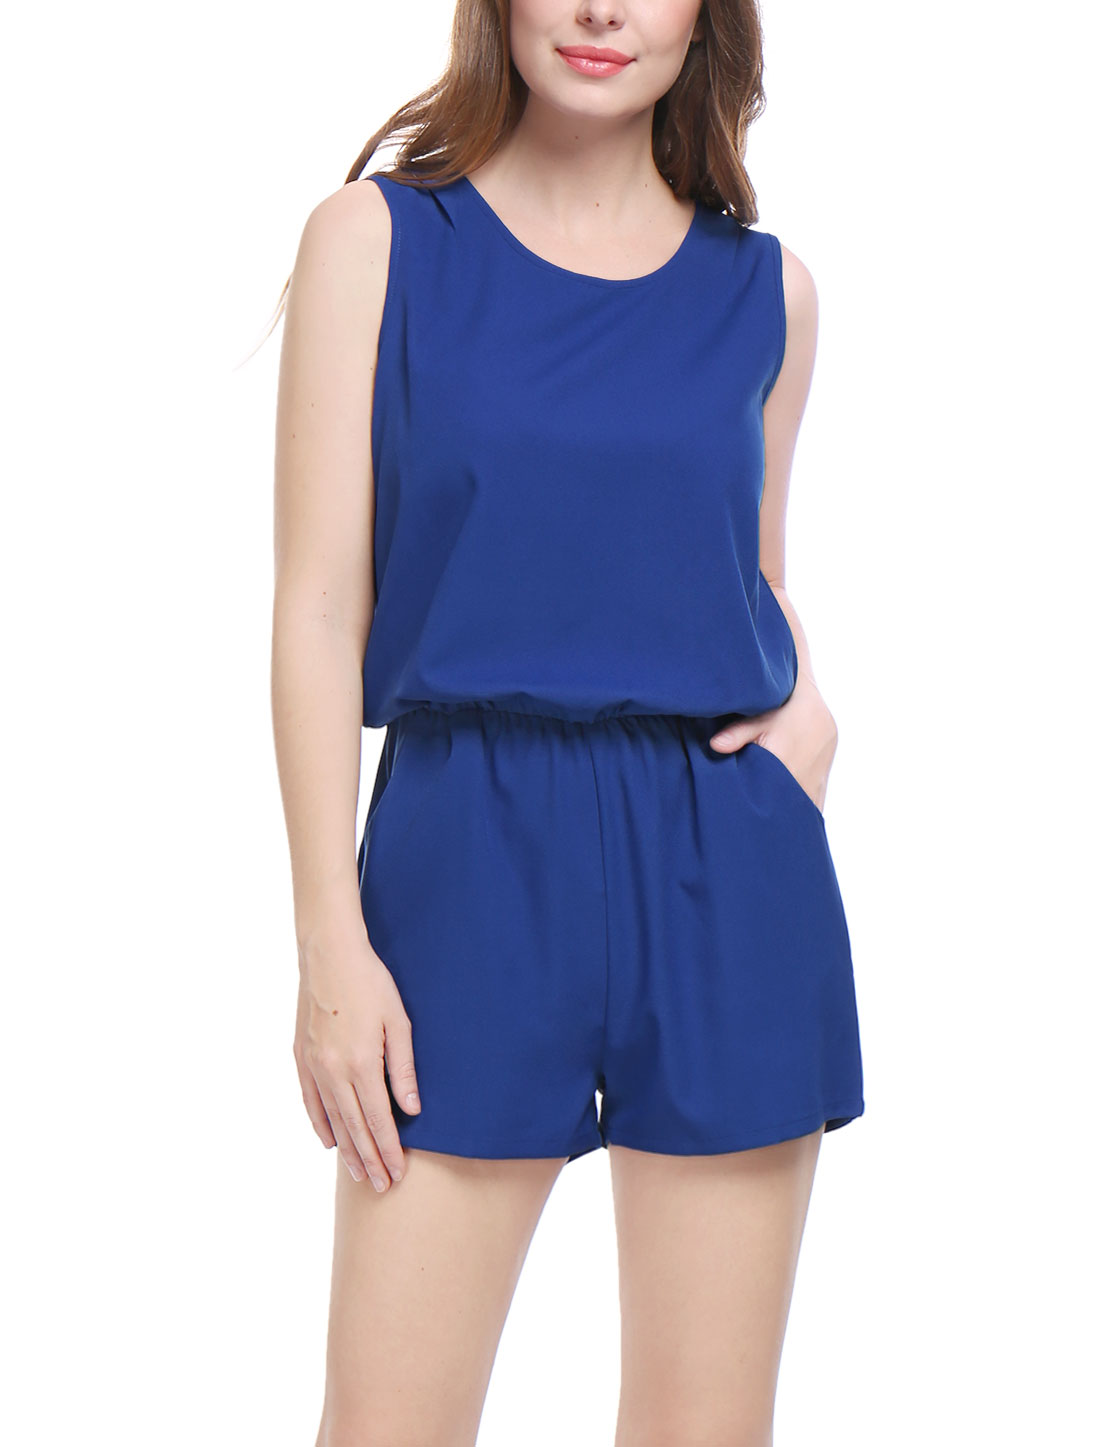 Allegra K Women Sleeveless Cut Out Back Elastic Waist Romper Dark Blue S